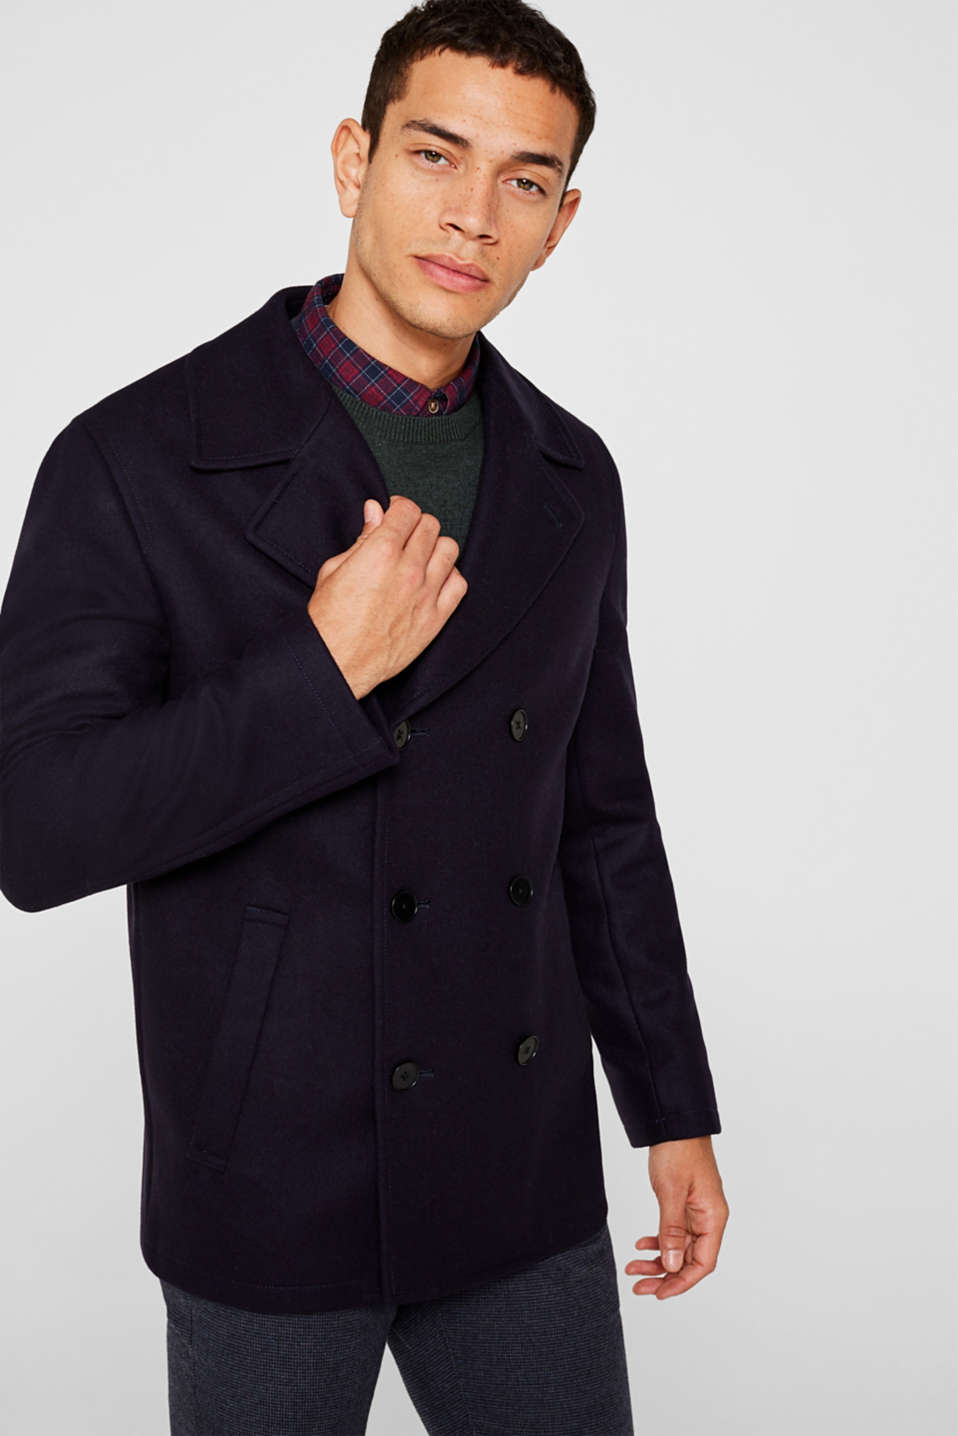 Wool blend: Coat made of Italian yarn